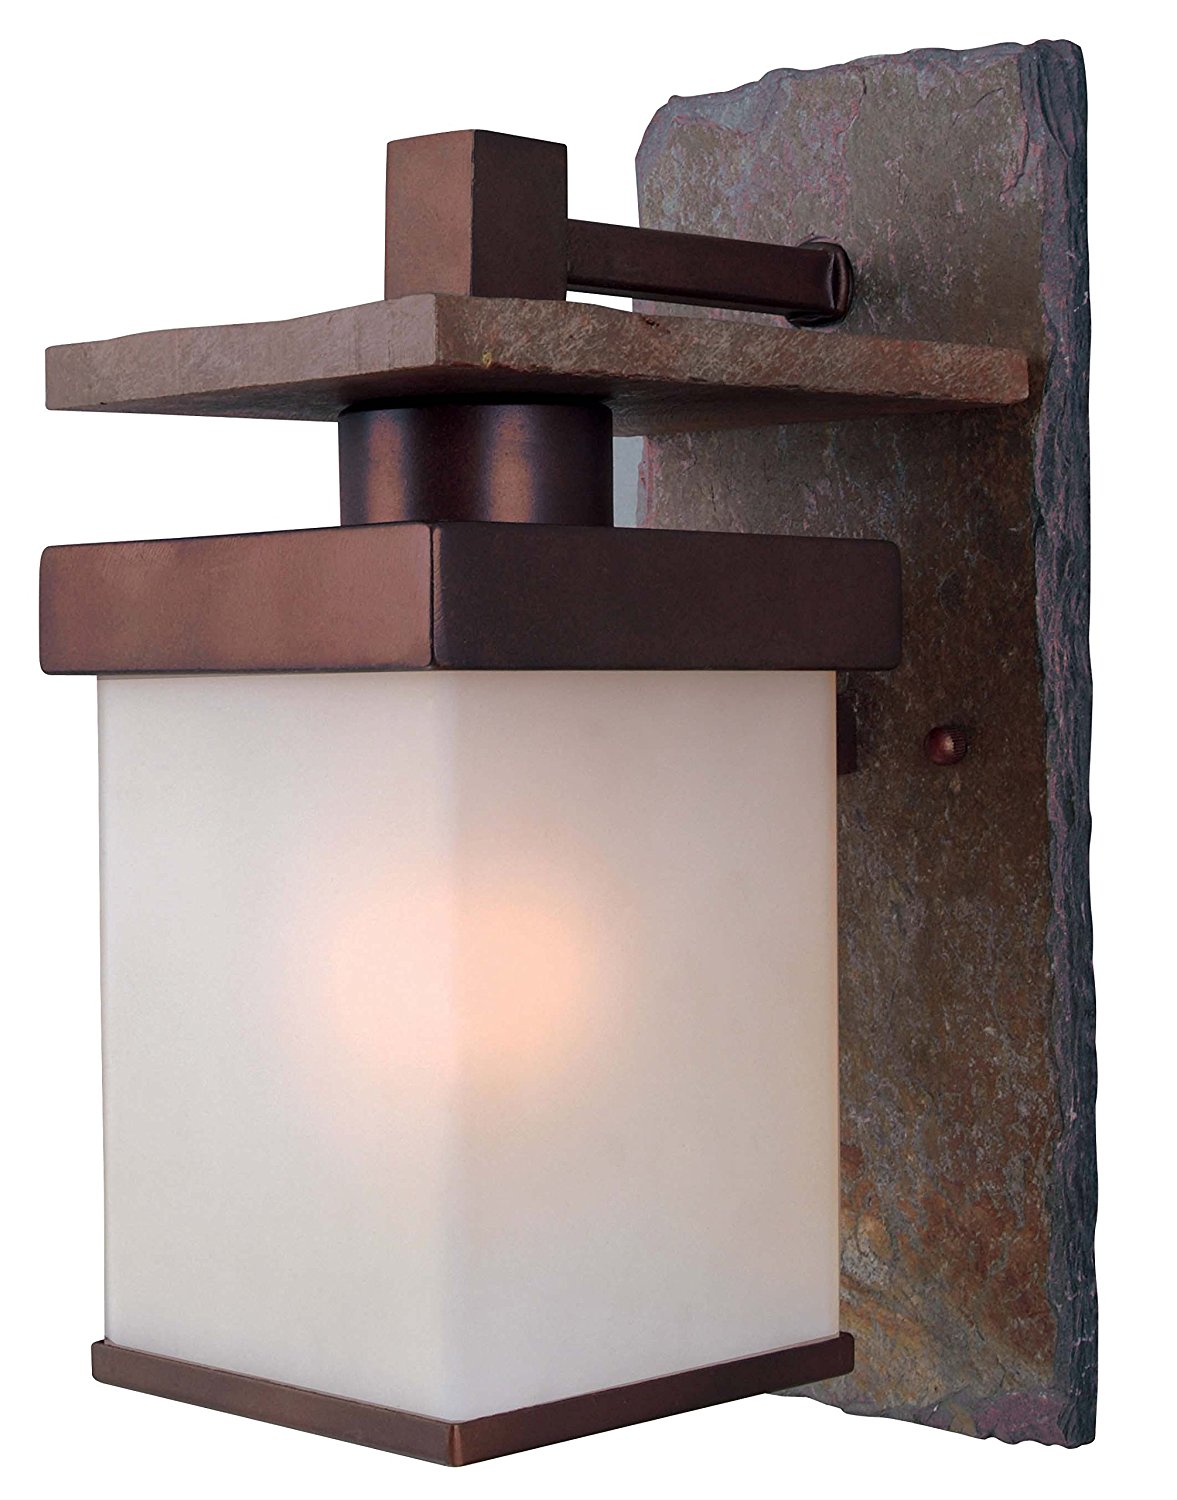 Kenroy Home 70283COP Boulder Medium Wall Lantern, Natural Slate With Copper